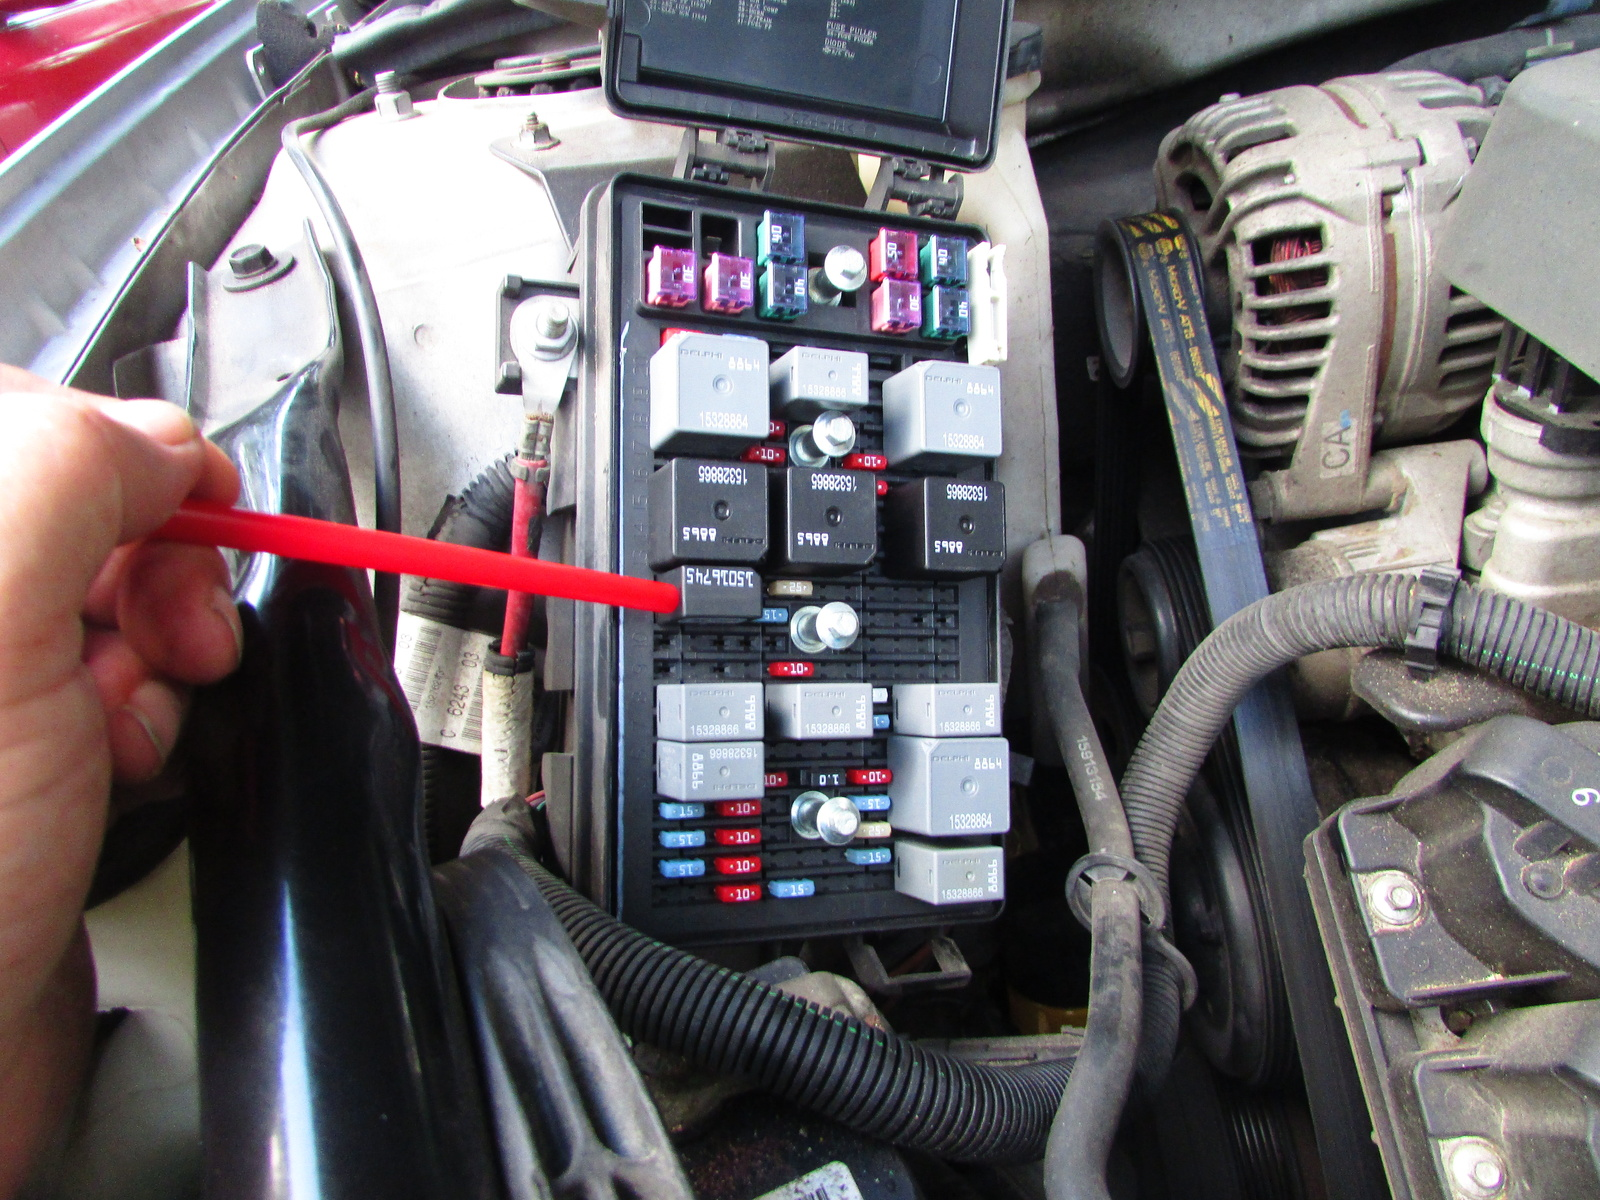 hight resolution of 2007 pontiac g5 fuse box location wiring library2007 pontiac g5 fuse box location